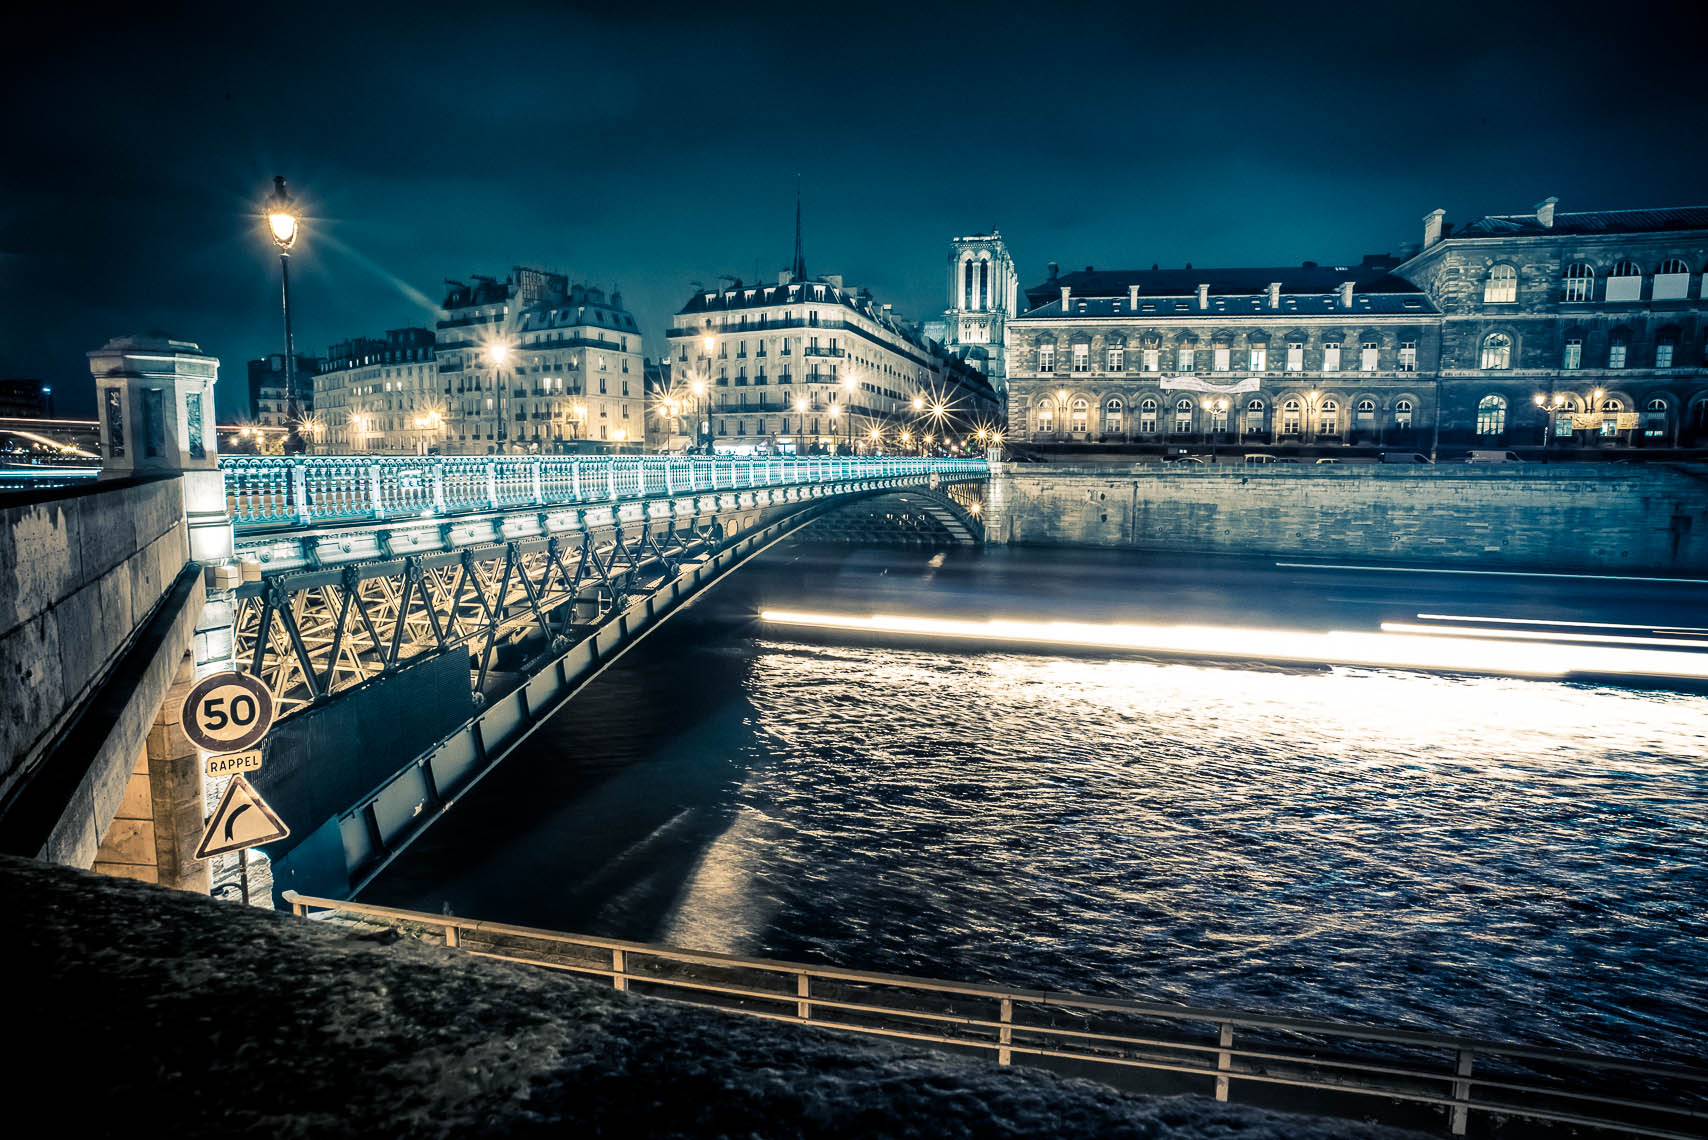 006_Paris by D800_La Seine.jpg